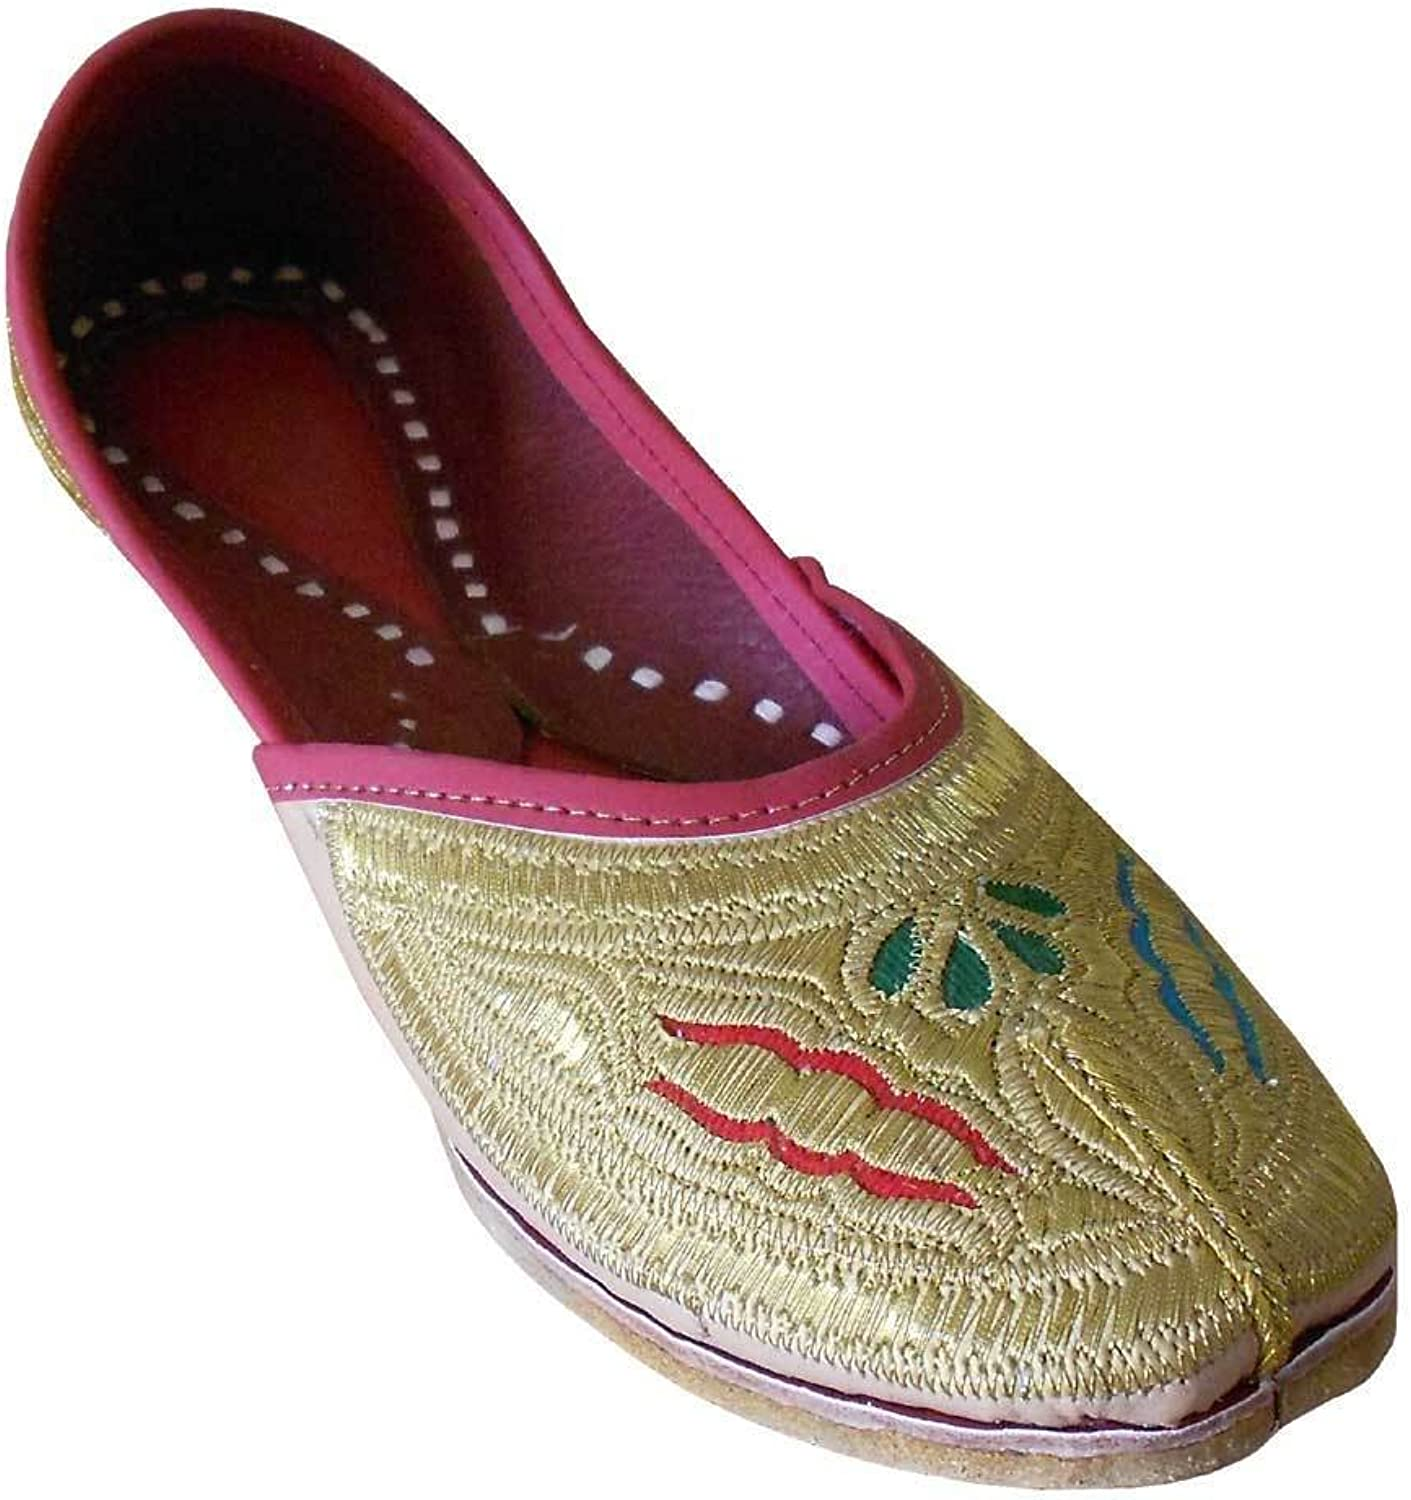 Kalra Creations Women's Traditonal Indian Faux Leather with Embroidery Casual shoes